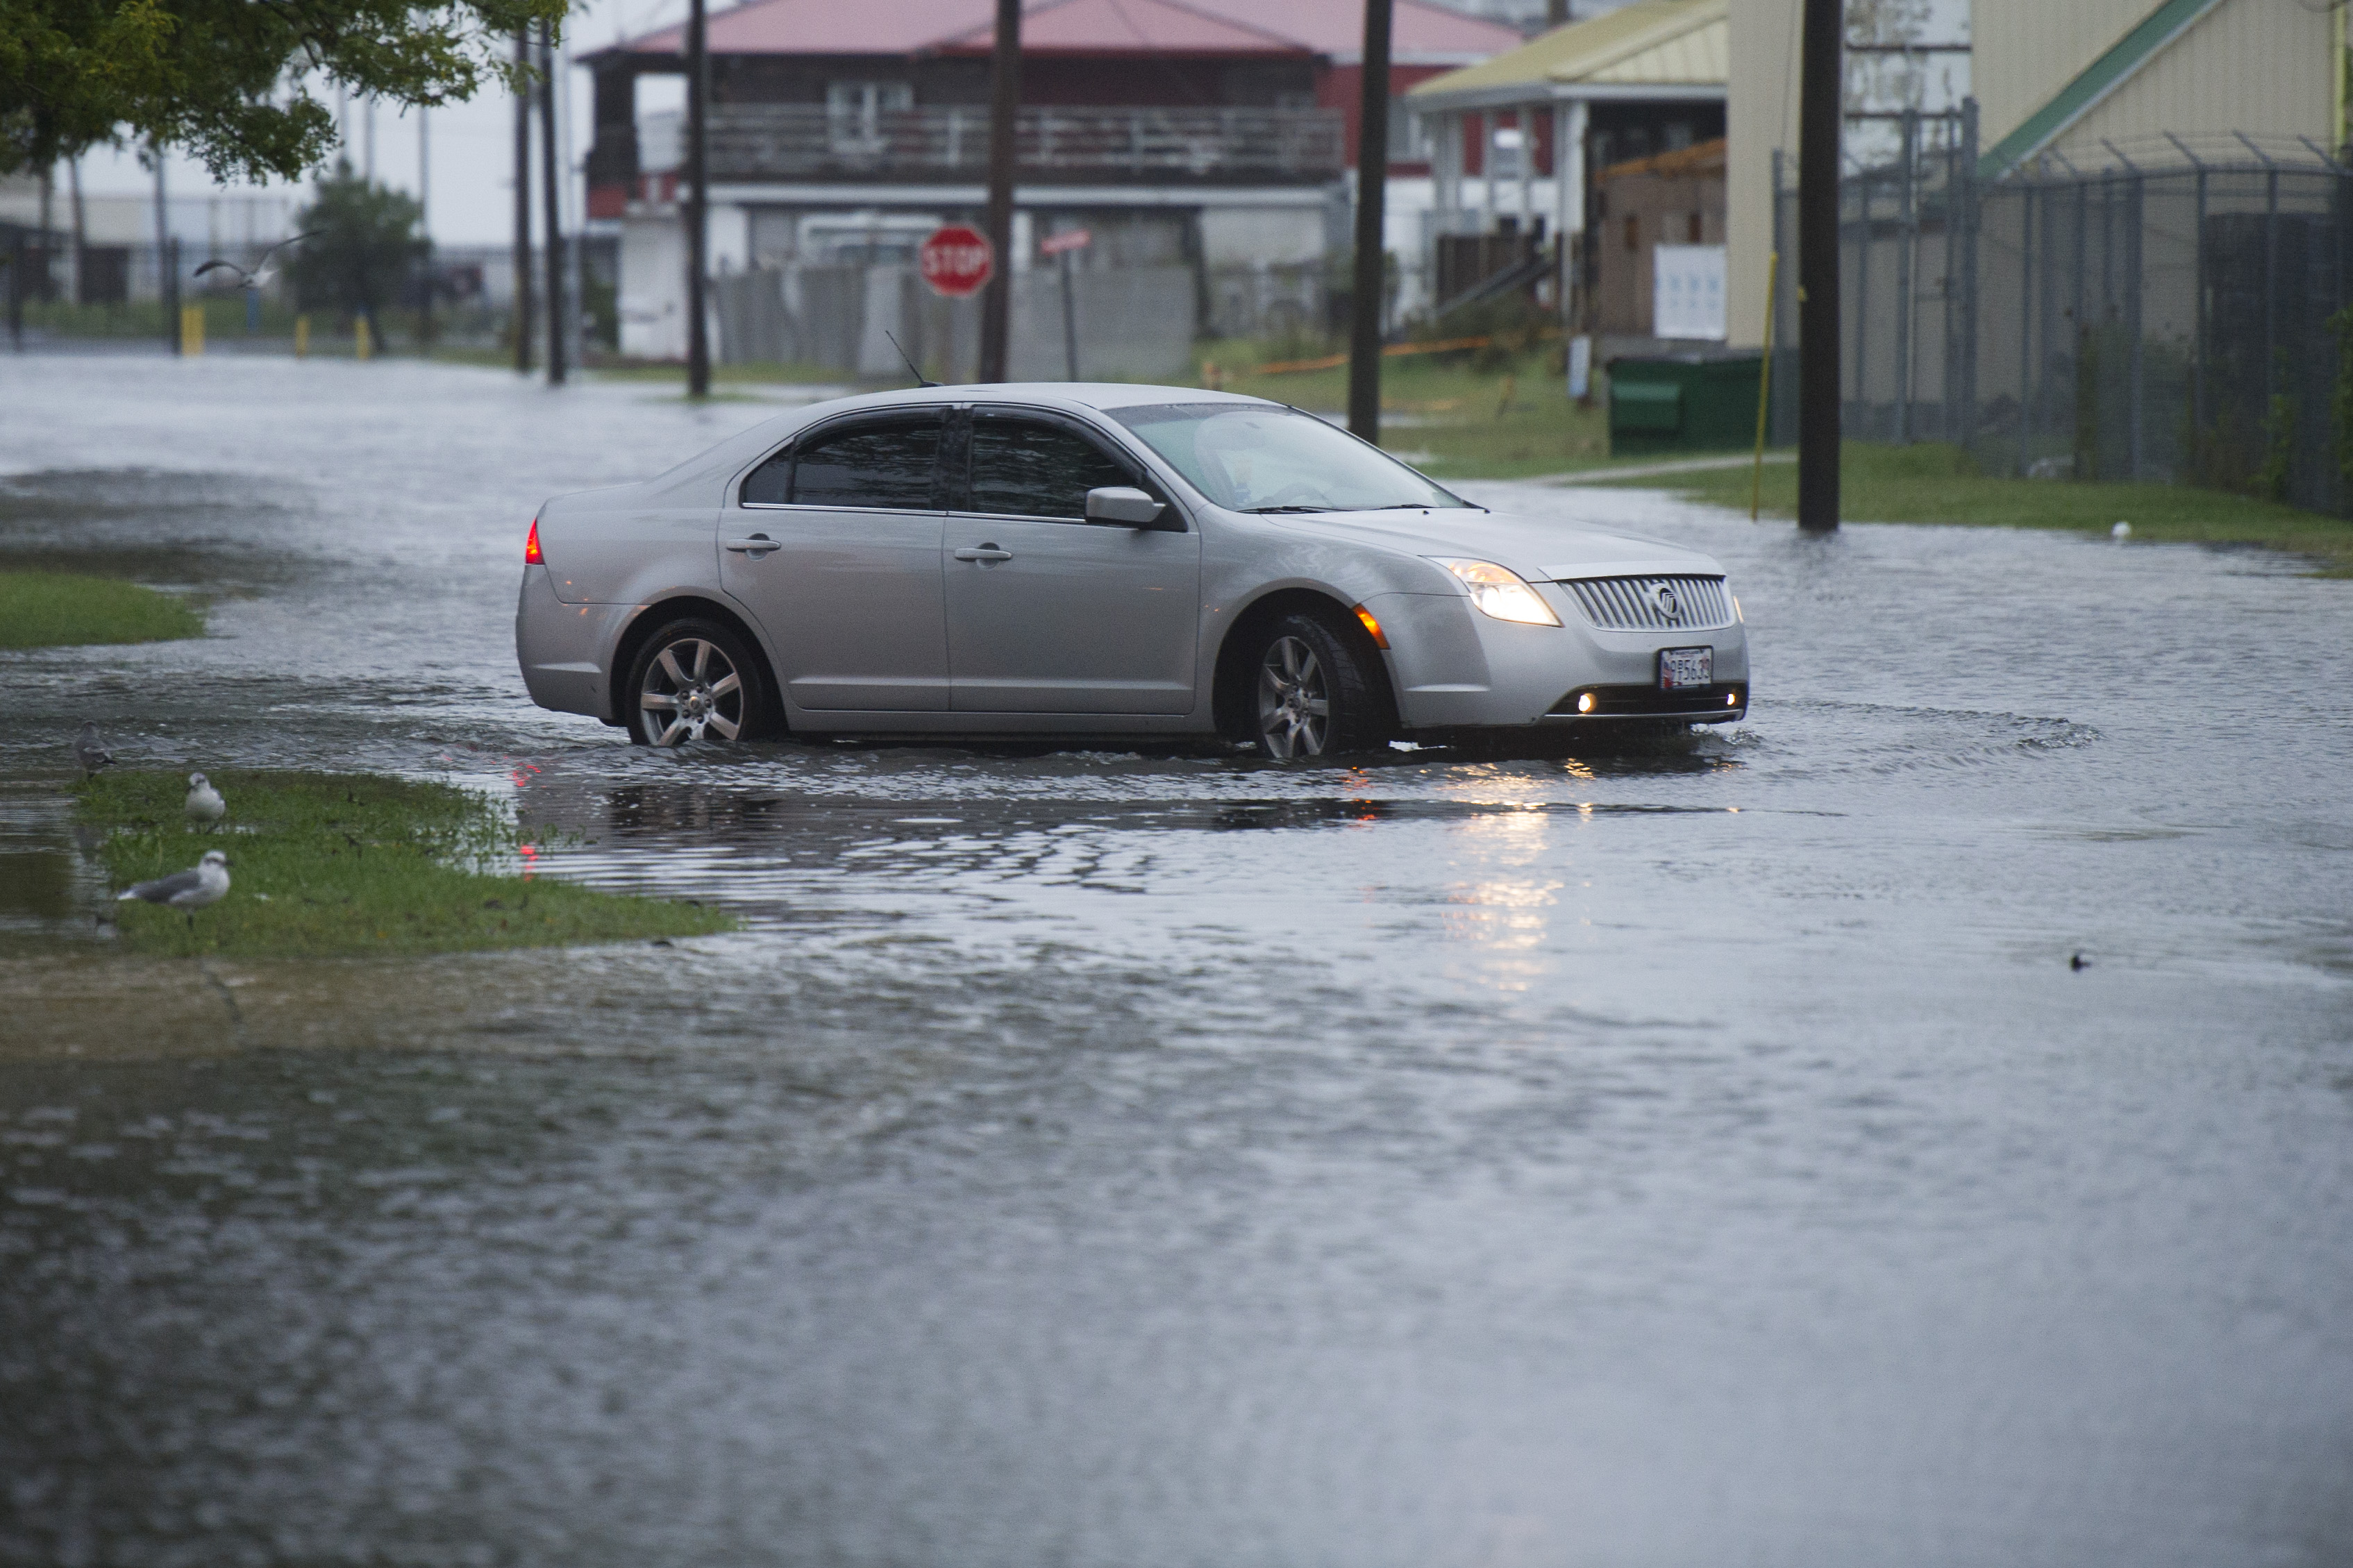 A car drives on flooded Broadway Street in Crisfield, Md., on the Chesapeake Bay, early Sunday, Oct. 4, 2015. Flood warnings remained in effect for many parts of the East Coast through Sunday. (AP Photo/Cliff Owen)